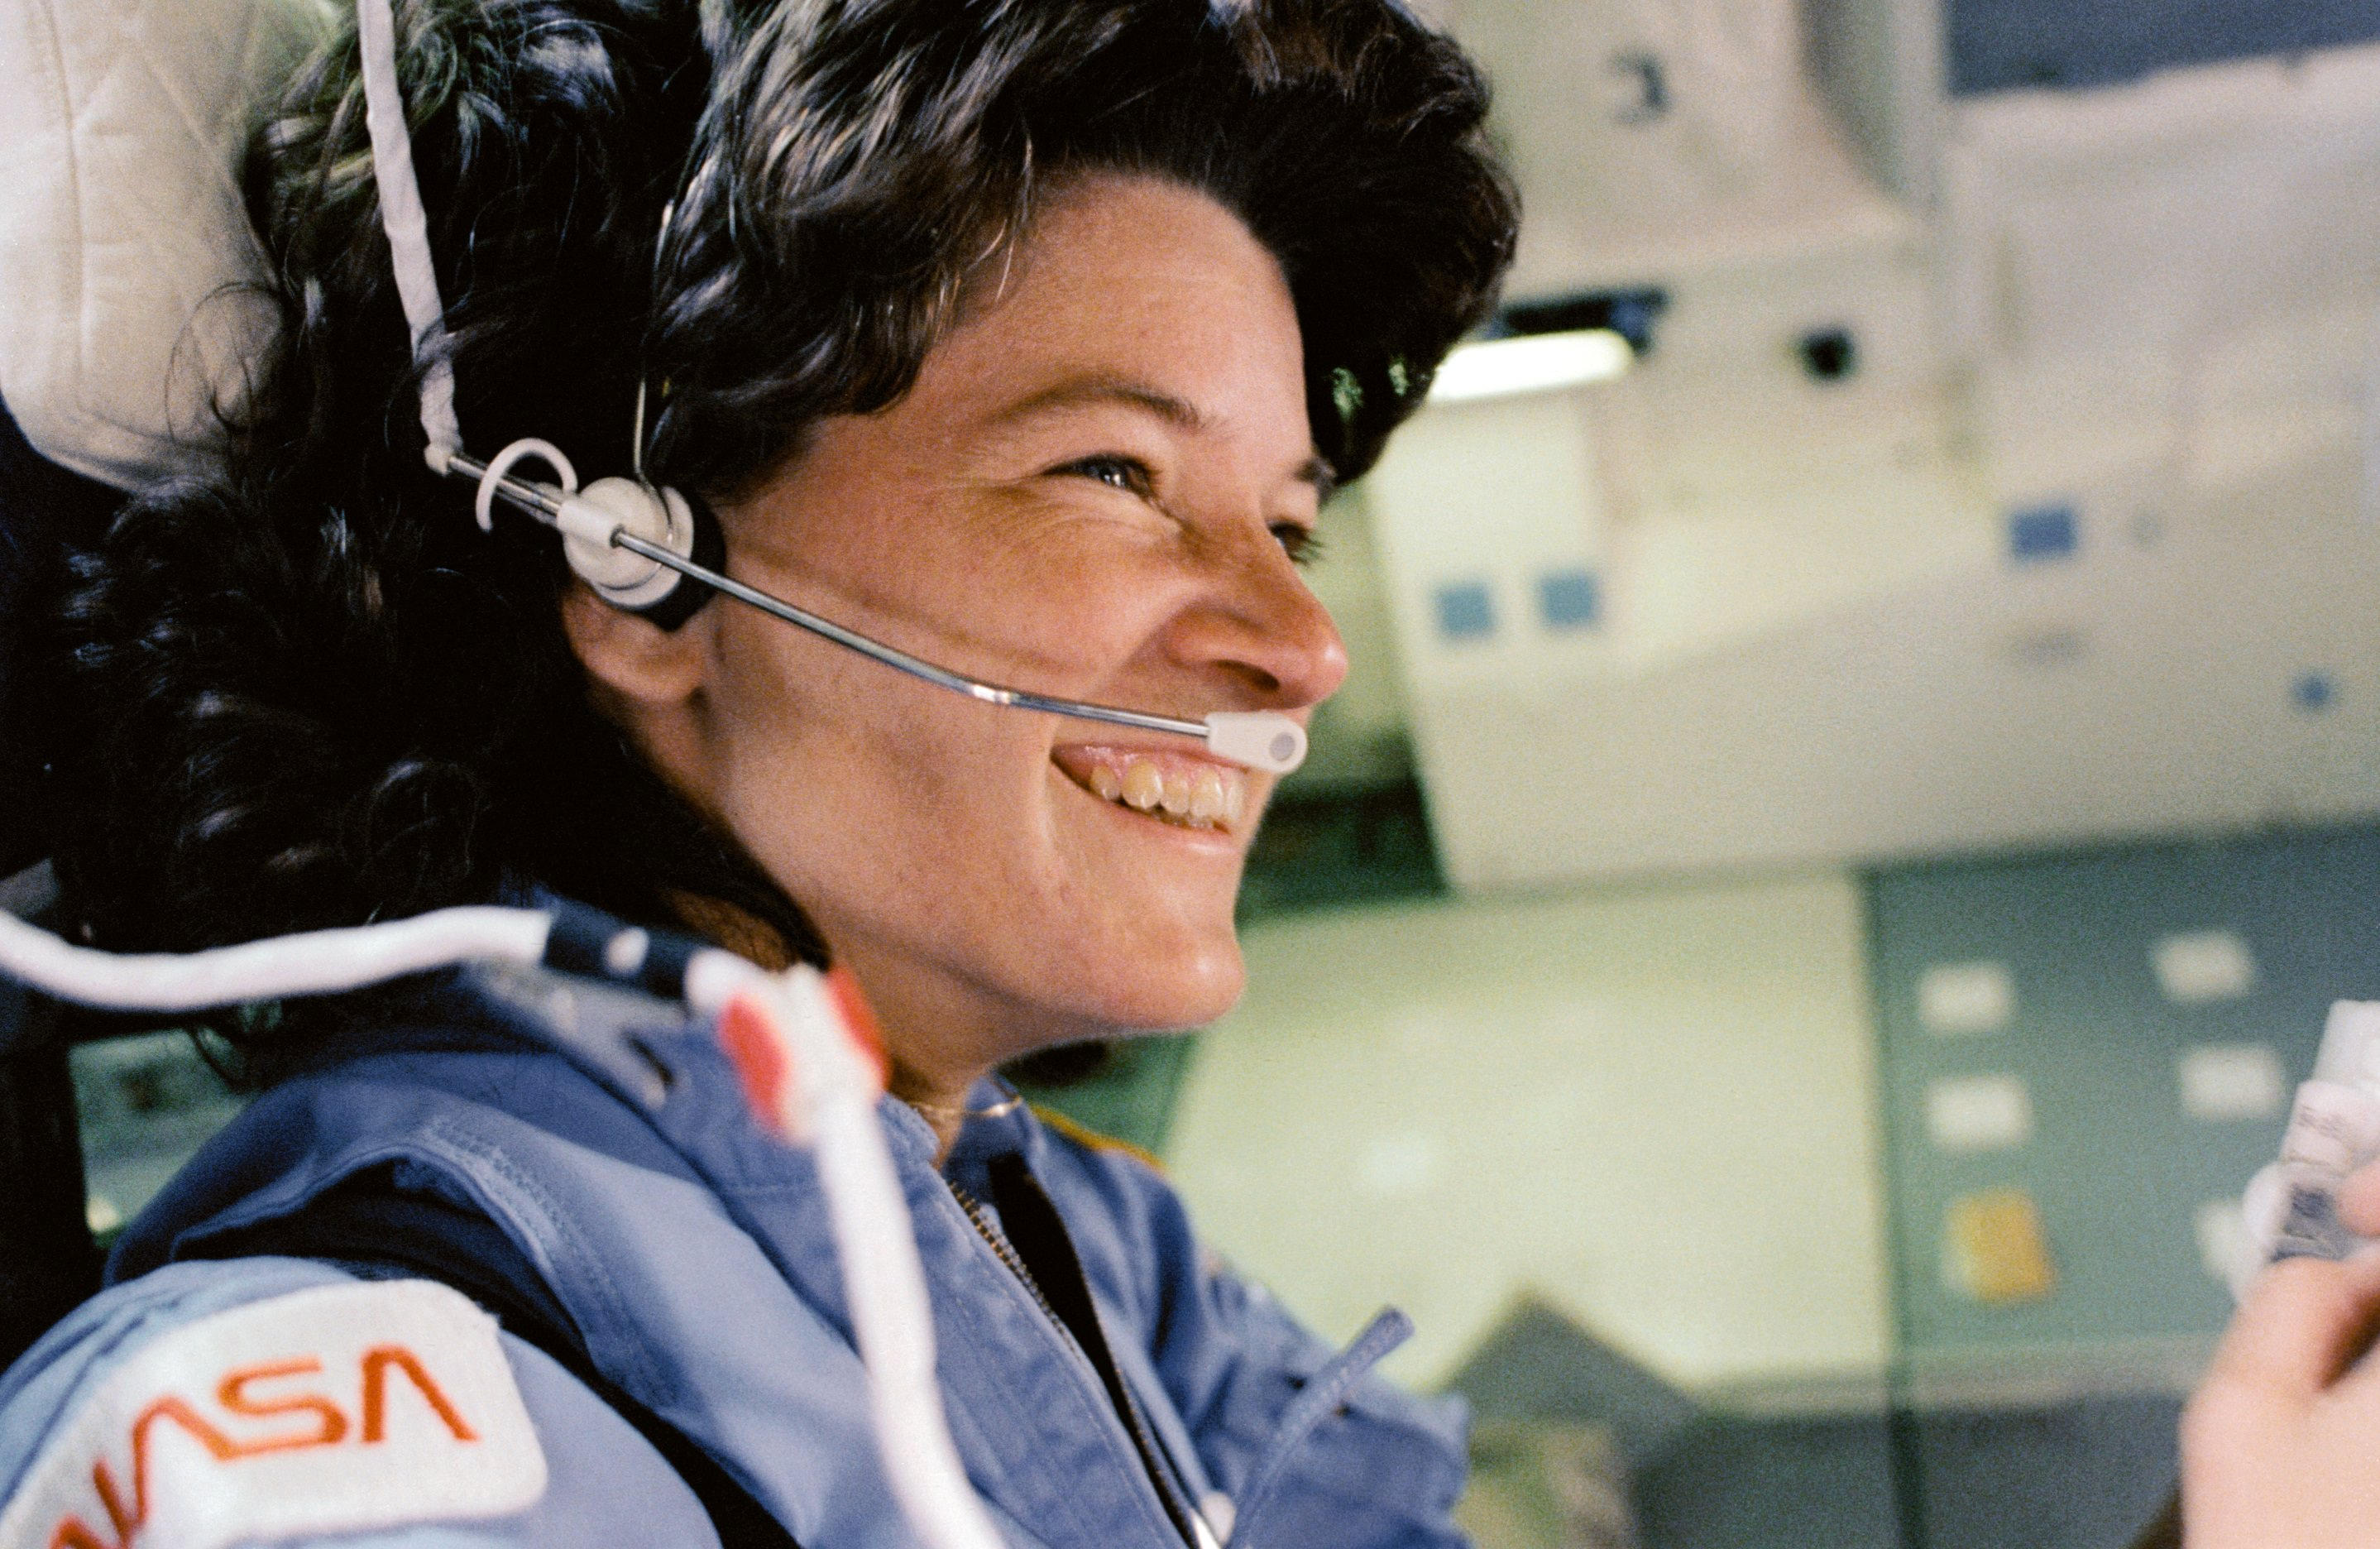 Tributes Mount As Sally Ride's 30th Anniversary In Space Approaches - Universe Today